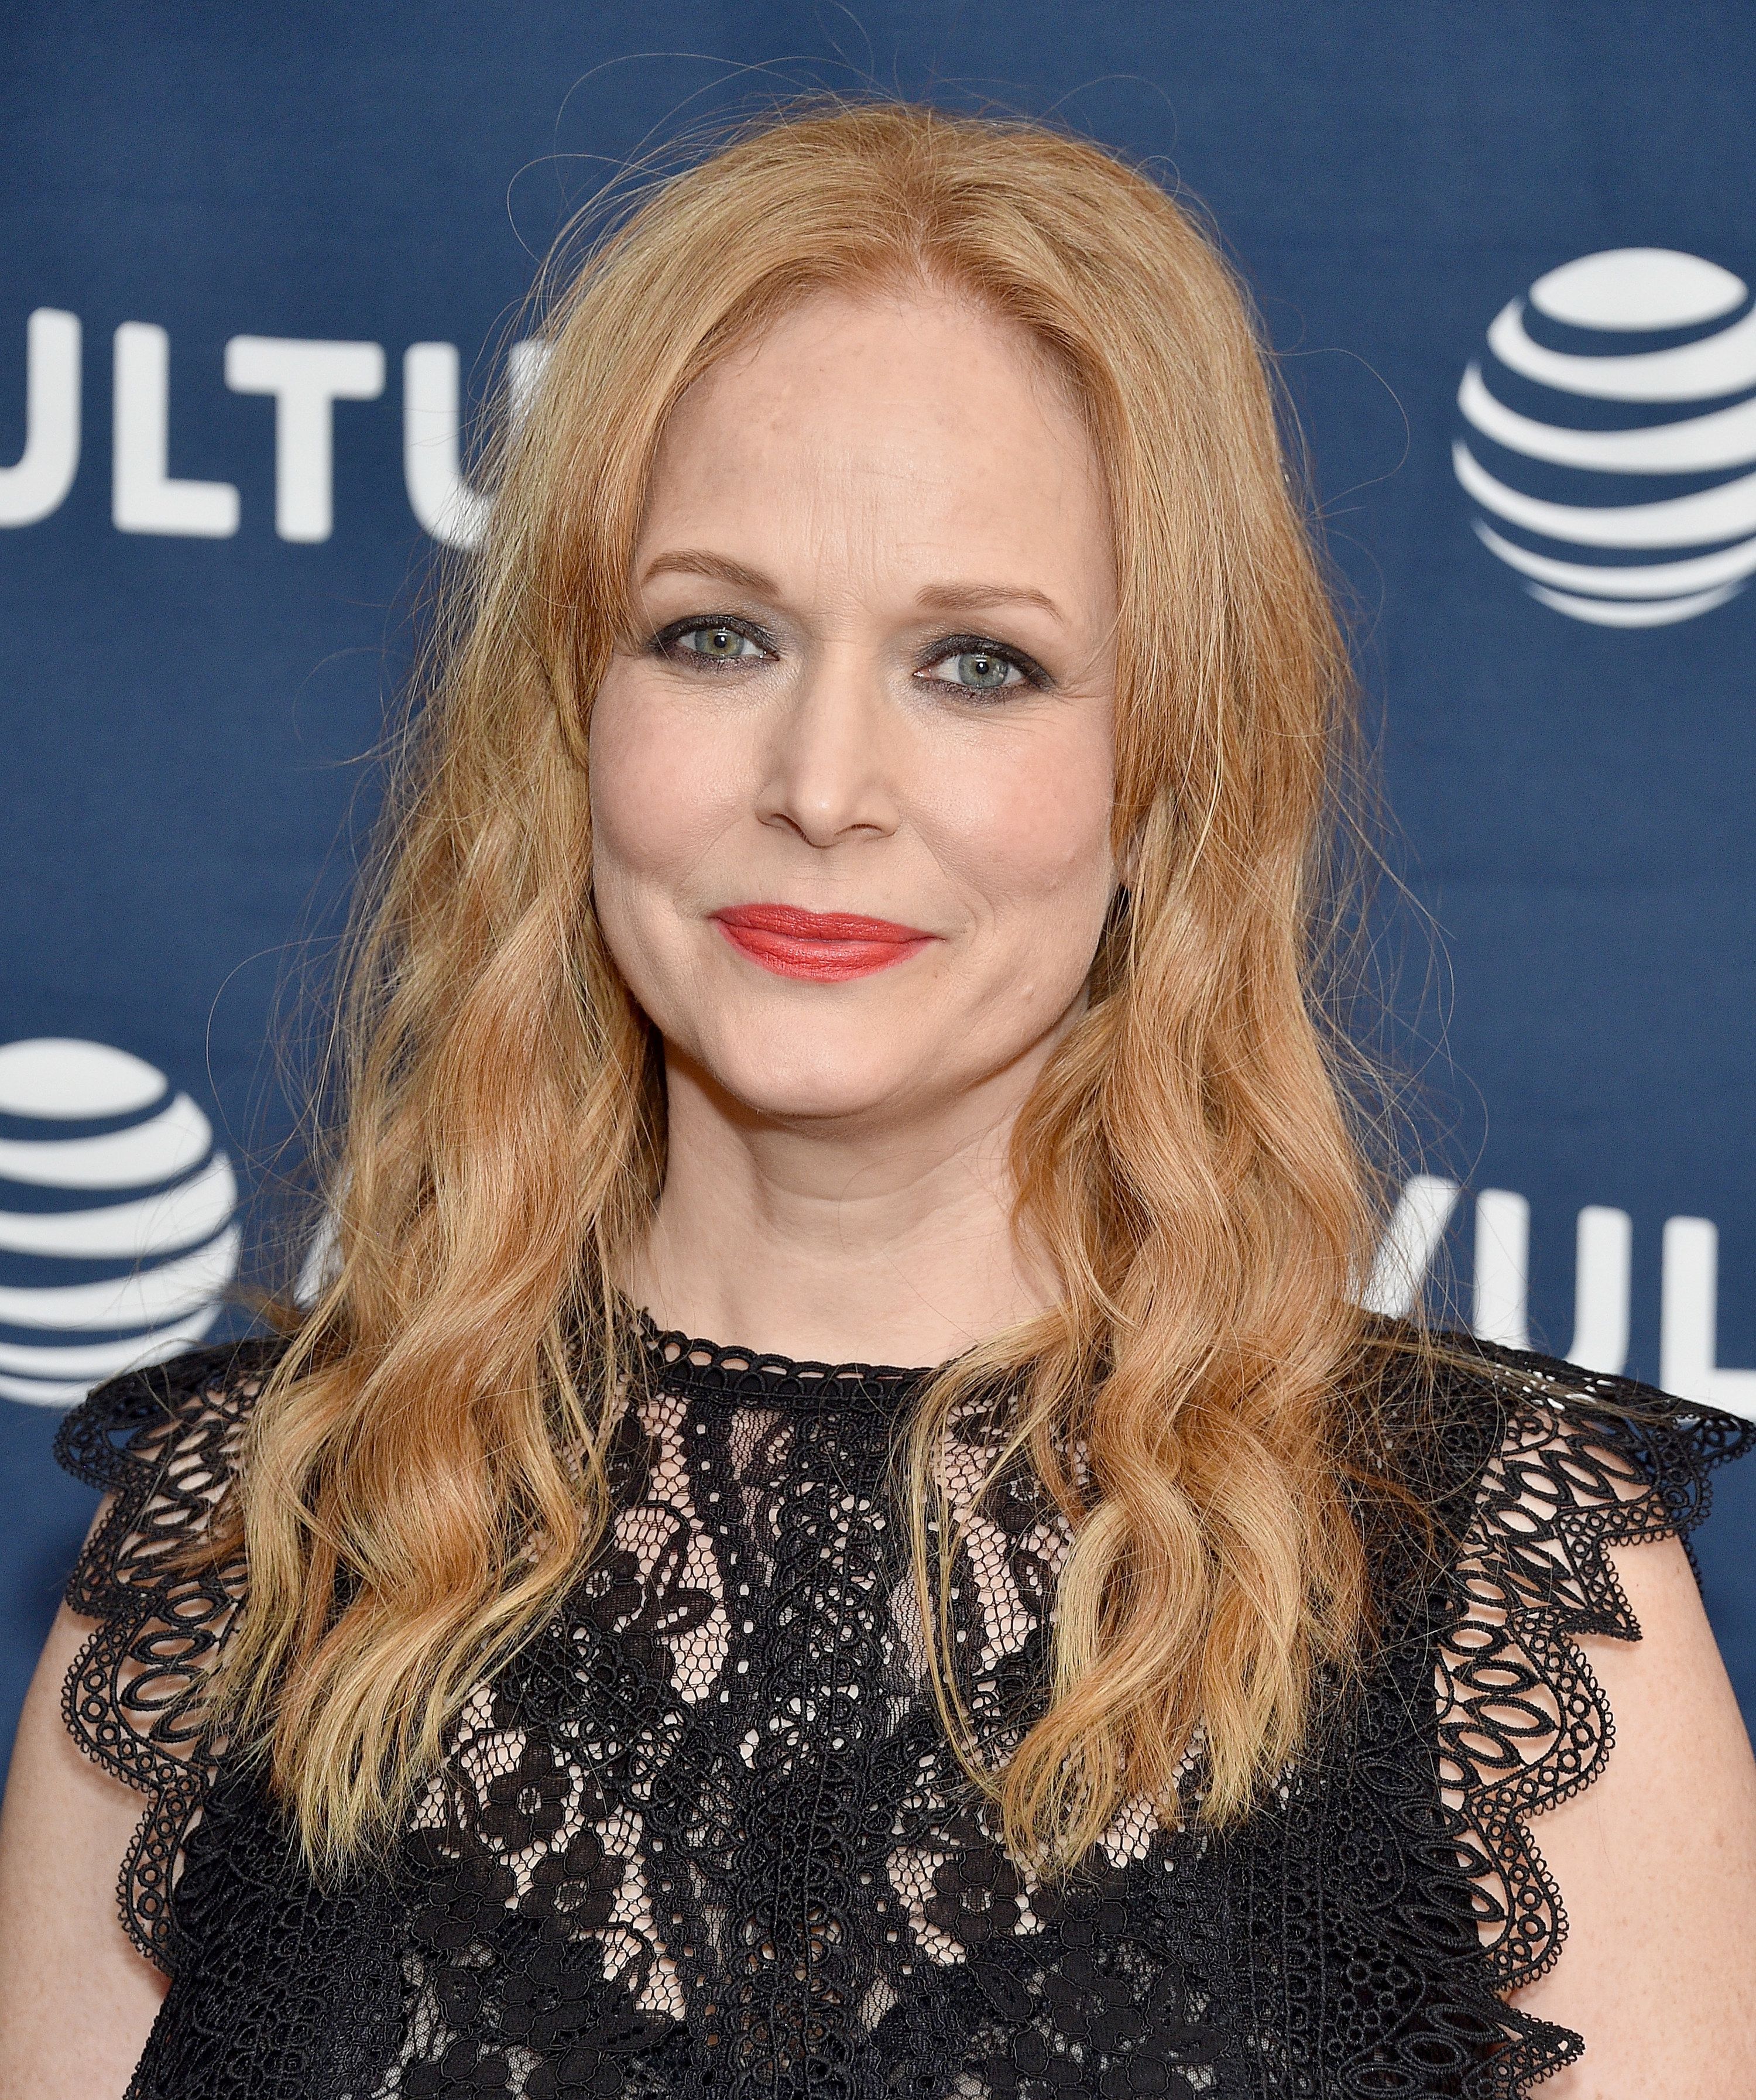 Chelah Horsdal posing on the red carpet at an event